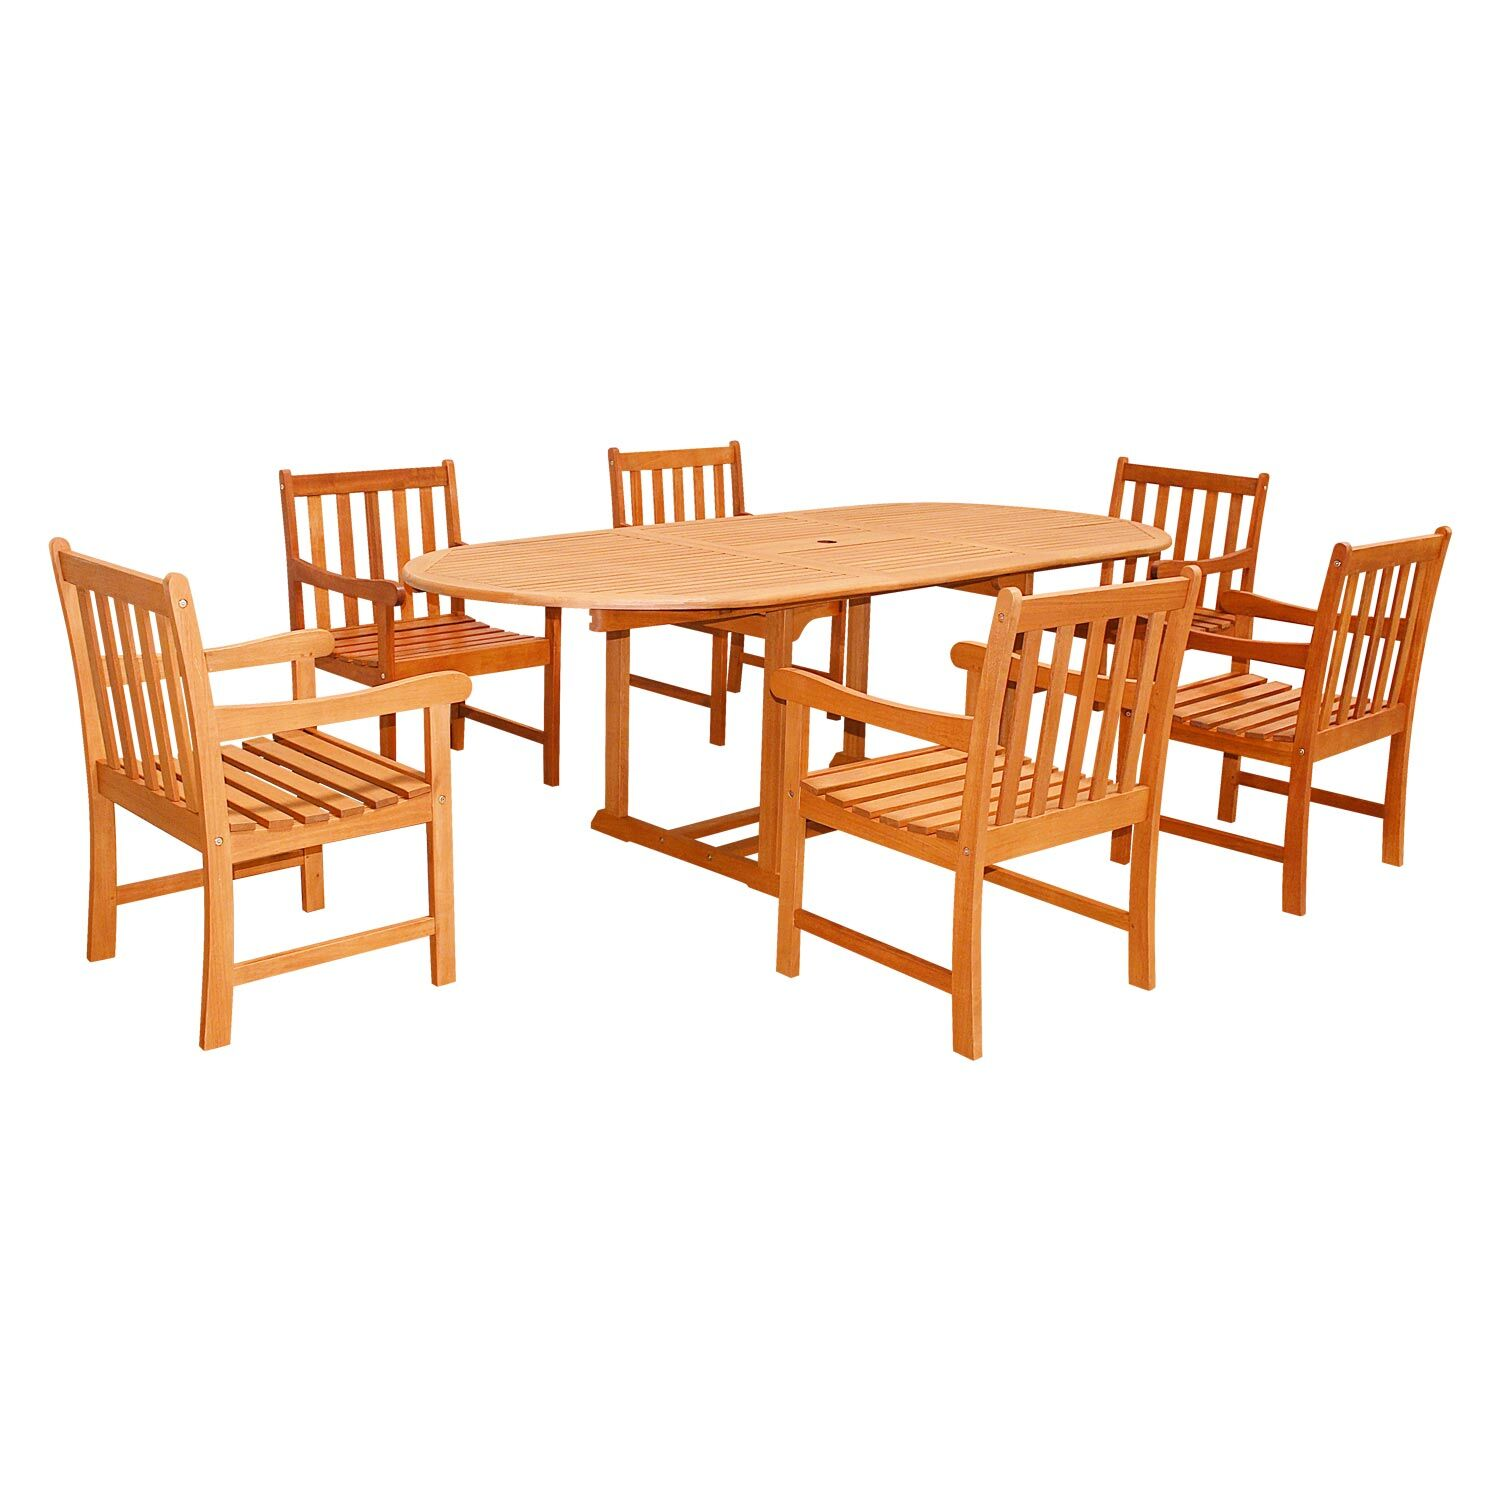 Five Piece Outdoor Dining Set with Oval Table